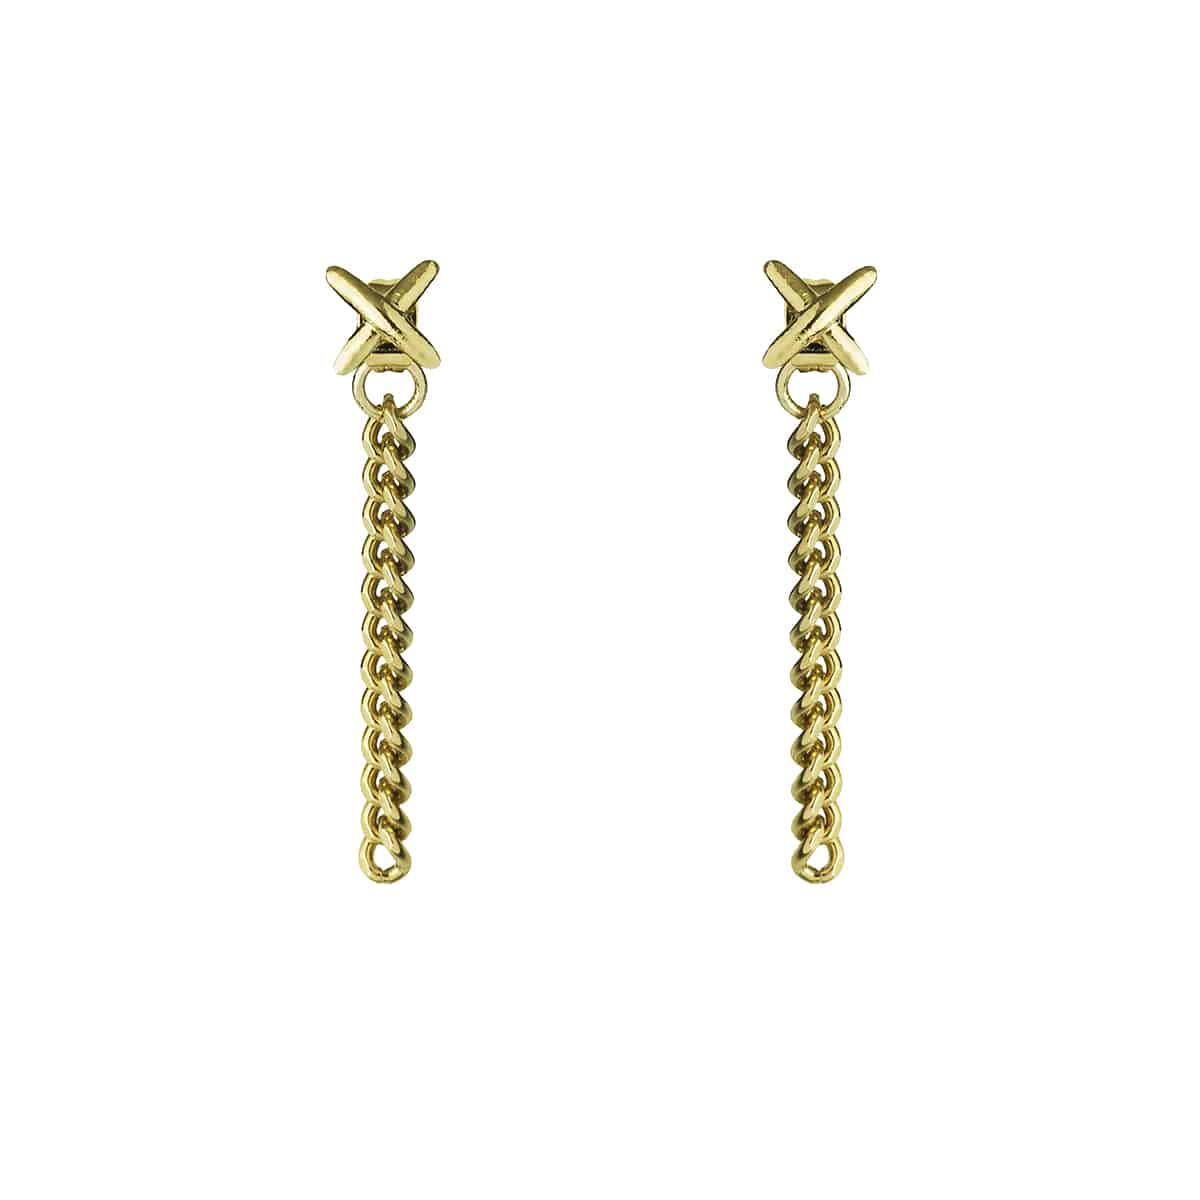 long golden X earrings coralie de seynes l'Erudite Concept Store handmade brass